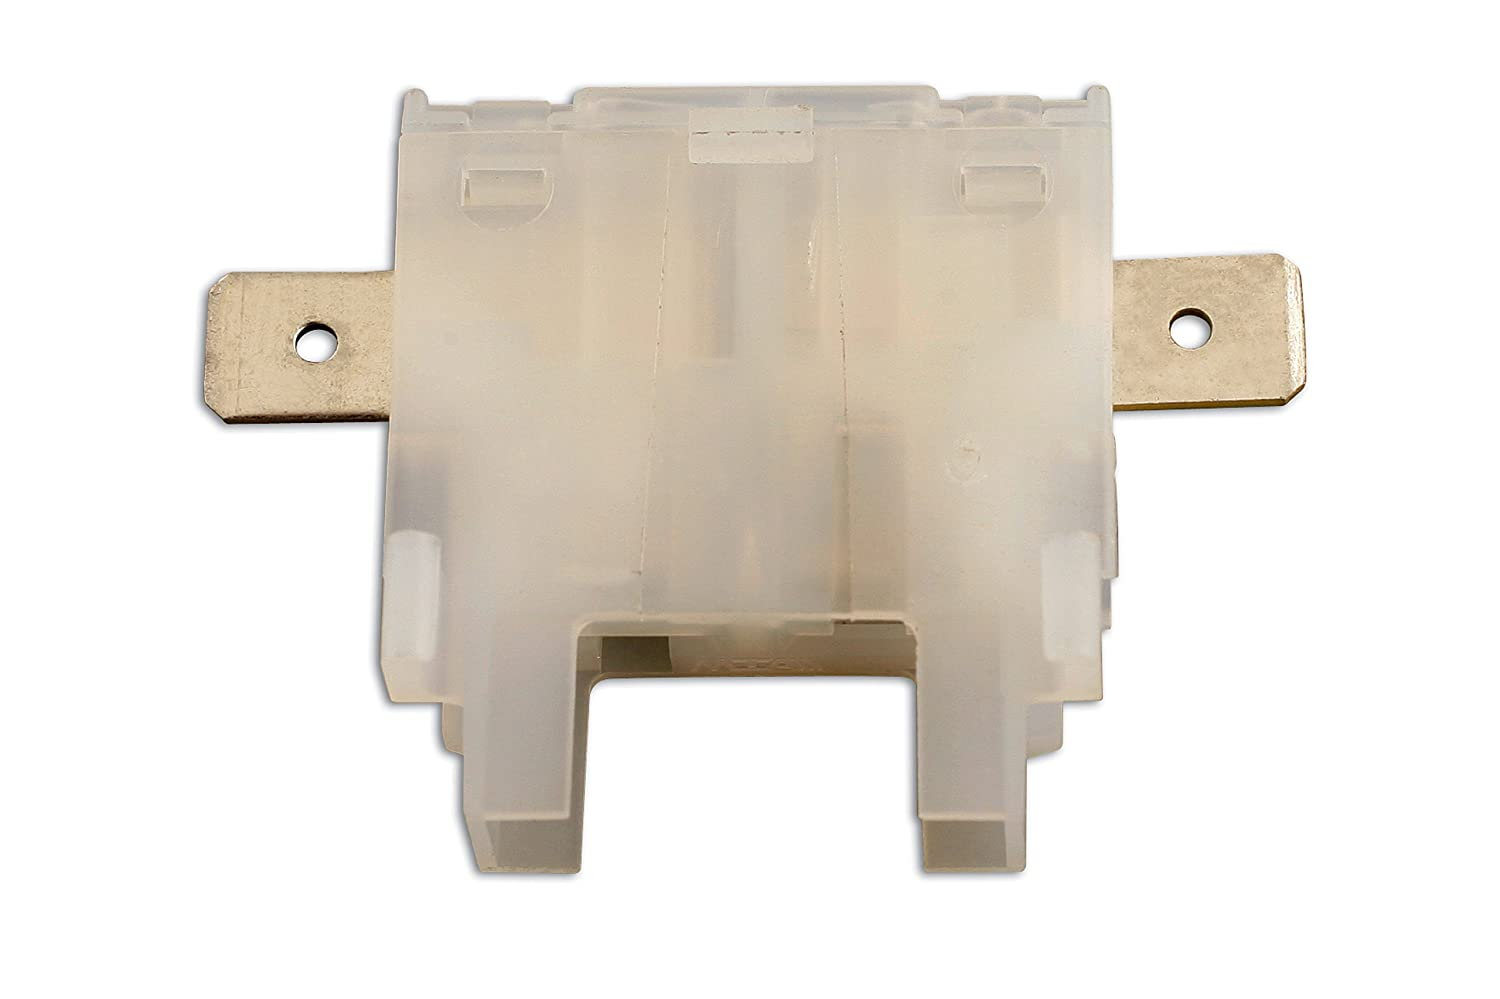 Connect porta fusibile in-line piatto 35175,  bianco, confezione da 10  bianco The Tool Connection Ltd.